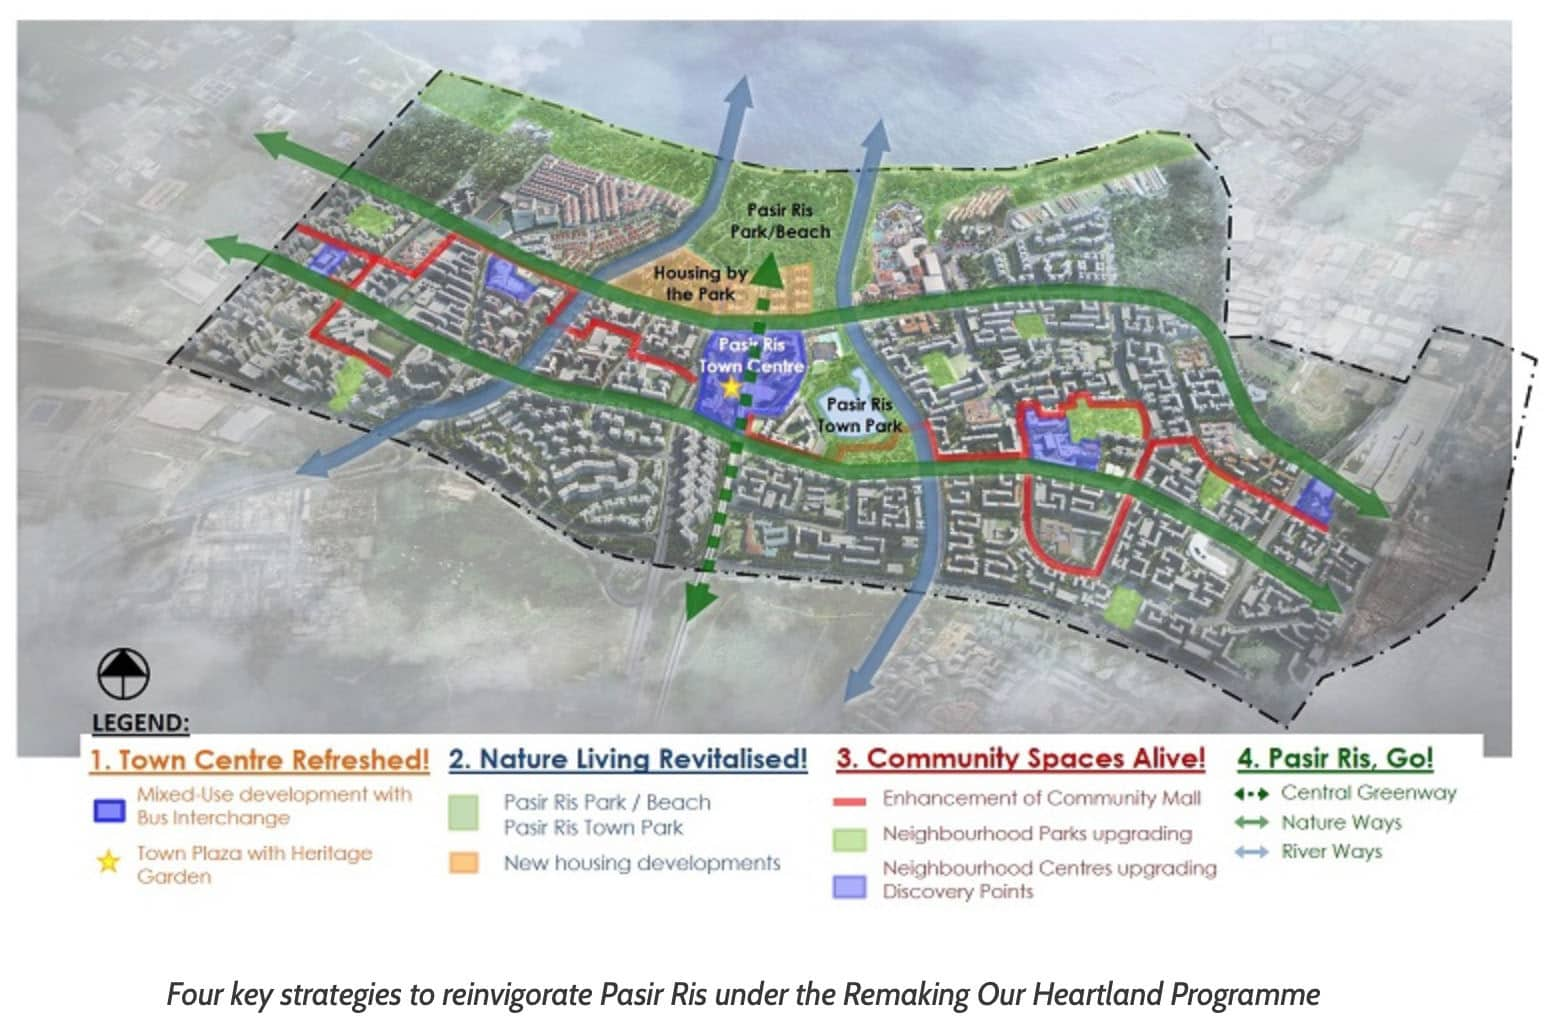 Pasir Ris 8 is part of remaking of our Pasir Ris heartland